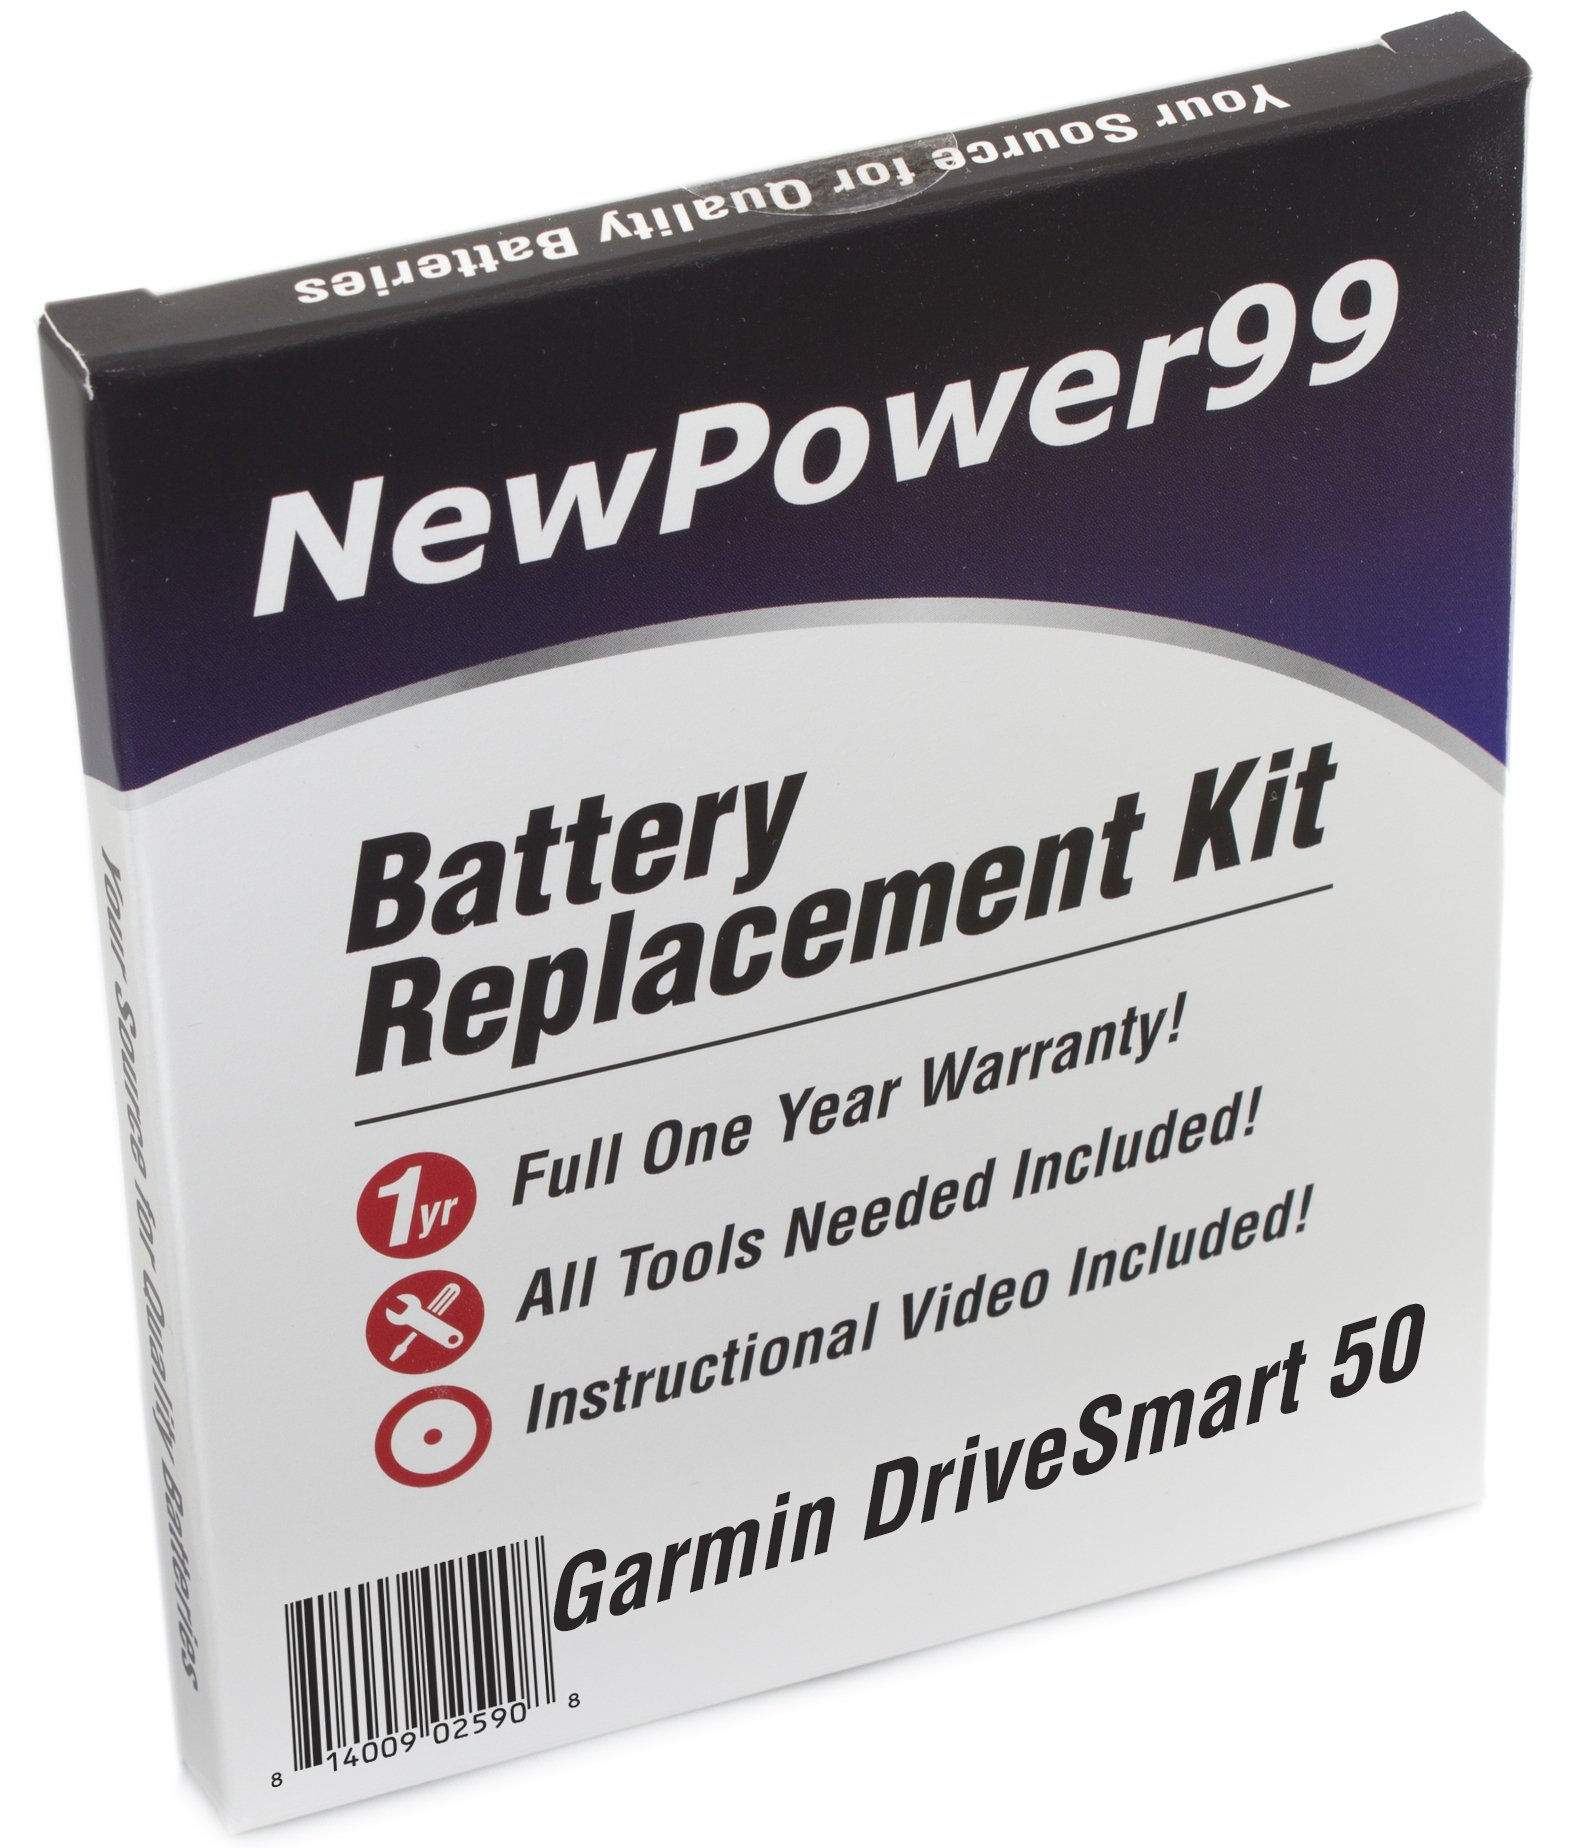 NewPower99 Battery Replacement Kit with Battery, Video Instructions and Tools for Garmin DriveSmart 50 by NewPower99